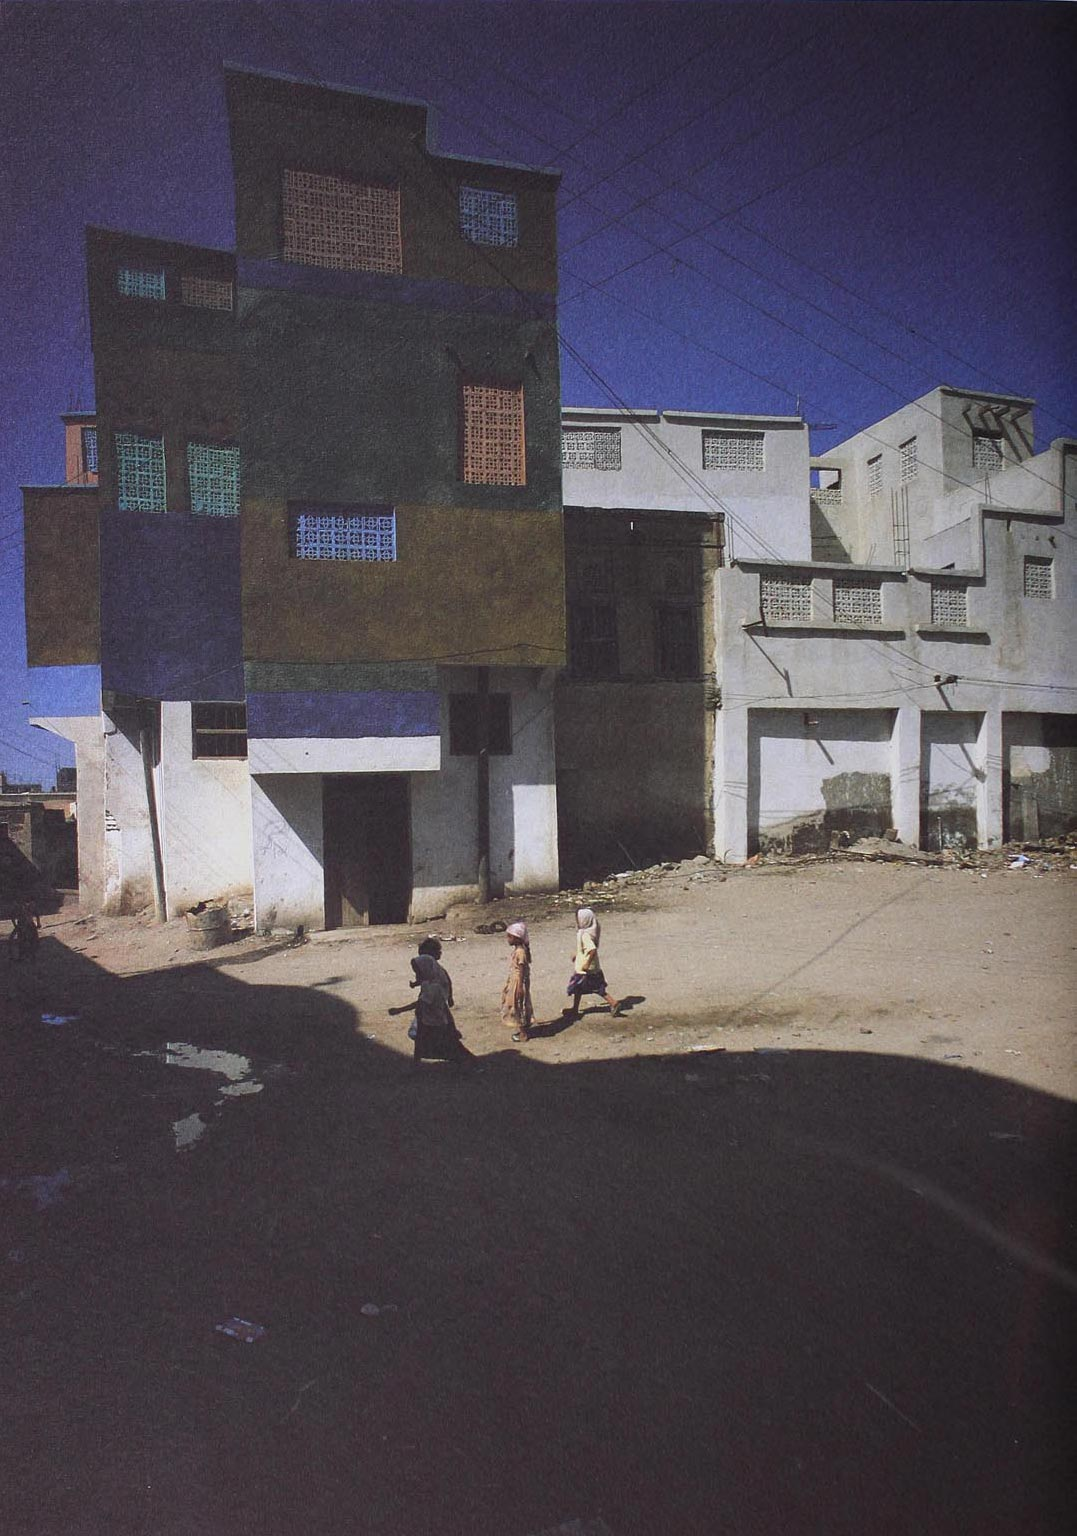 Bayt El Faqih, North Yemen, 1980. Photograph by E.Sottsass